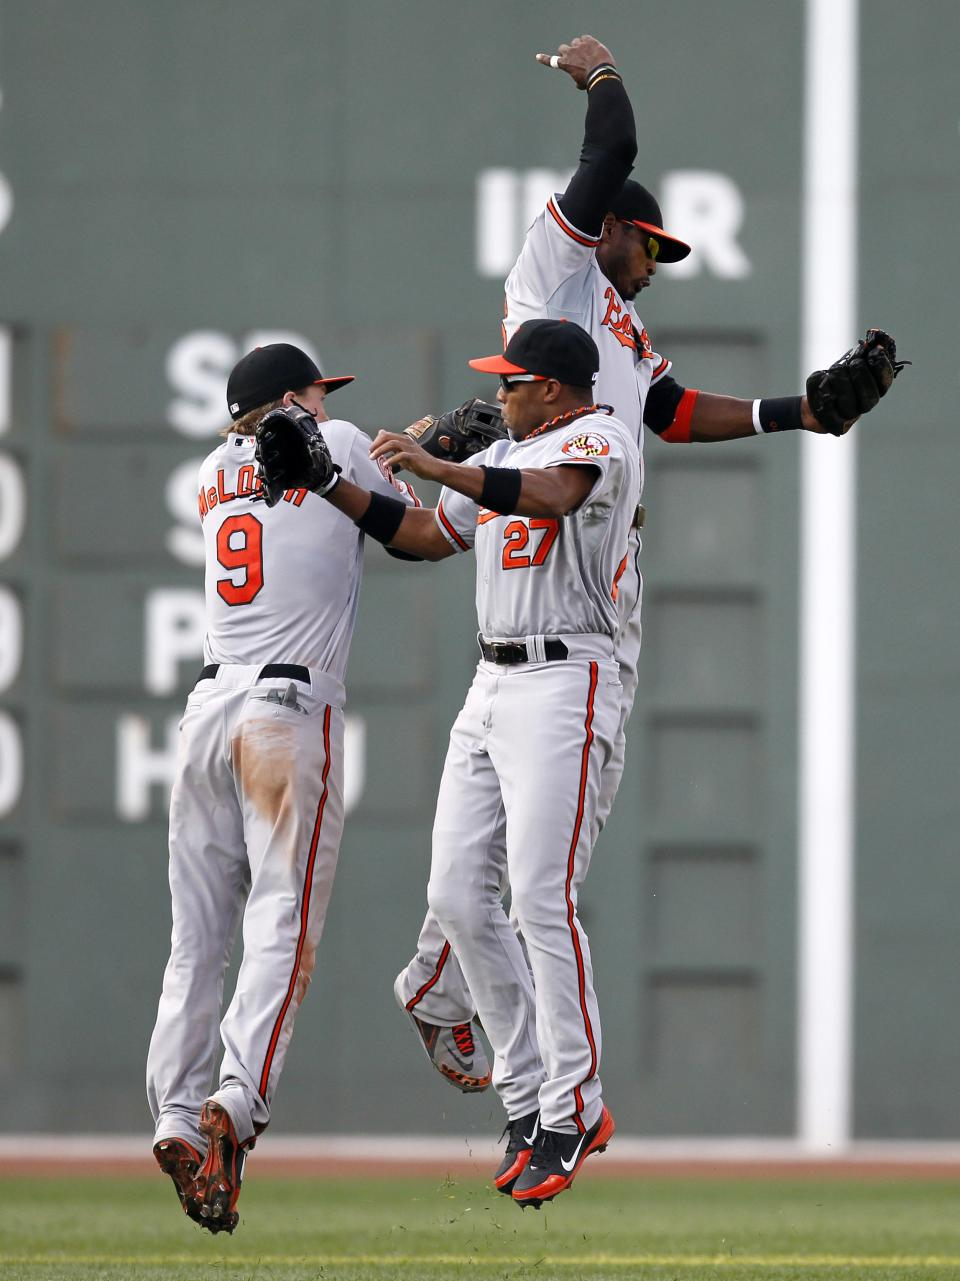 Baltimore Orioles' Nate McLouth (9), Endy Chavez (27) and Adam Jones, top, celebrate after defeating the Boston Red Sox 9-6 in the 12th inning of a baseball game in Boston, Saturday, Sept. 22, 2012. (AP Photo/Michael Dwyer)